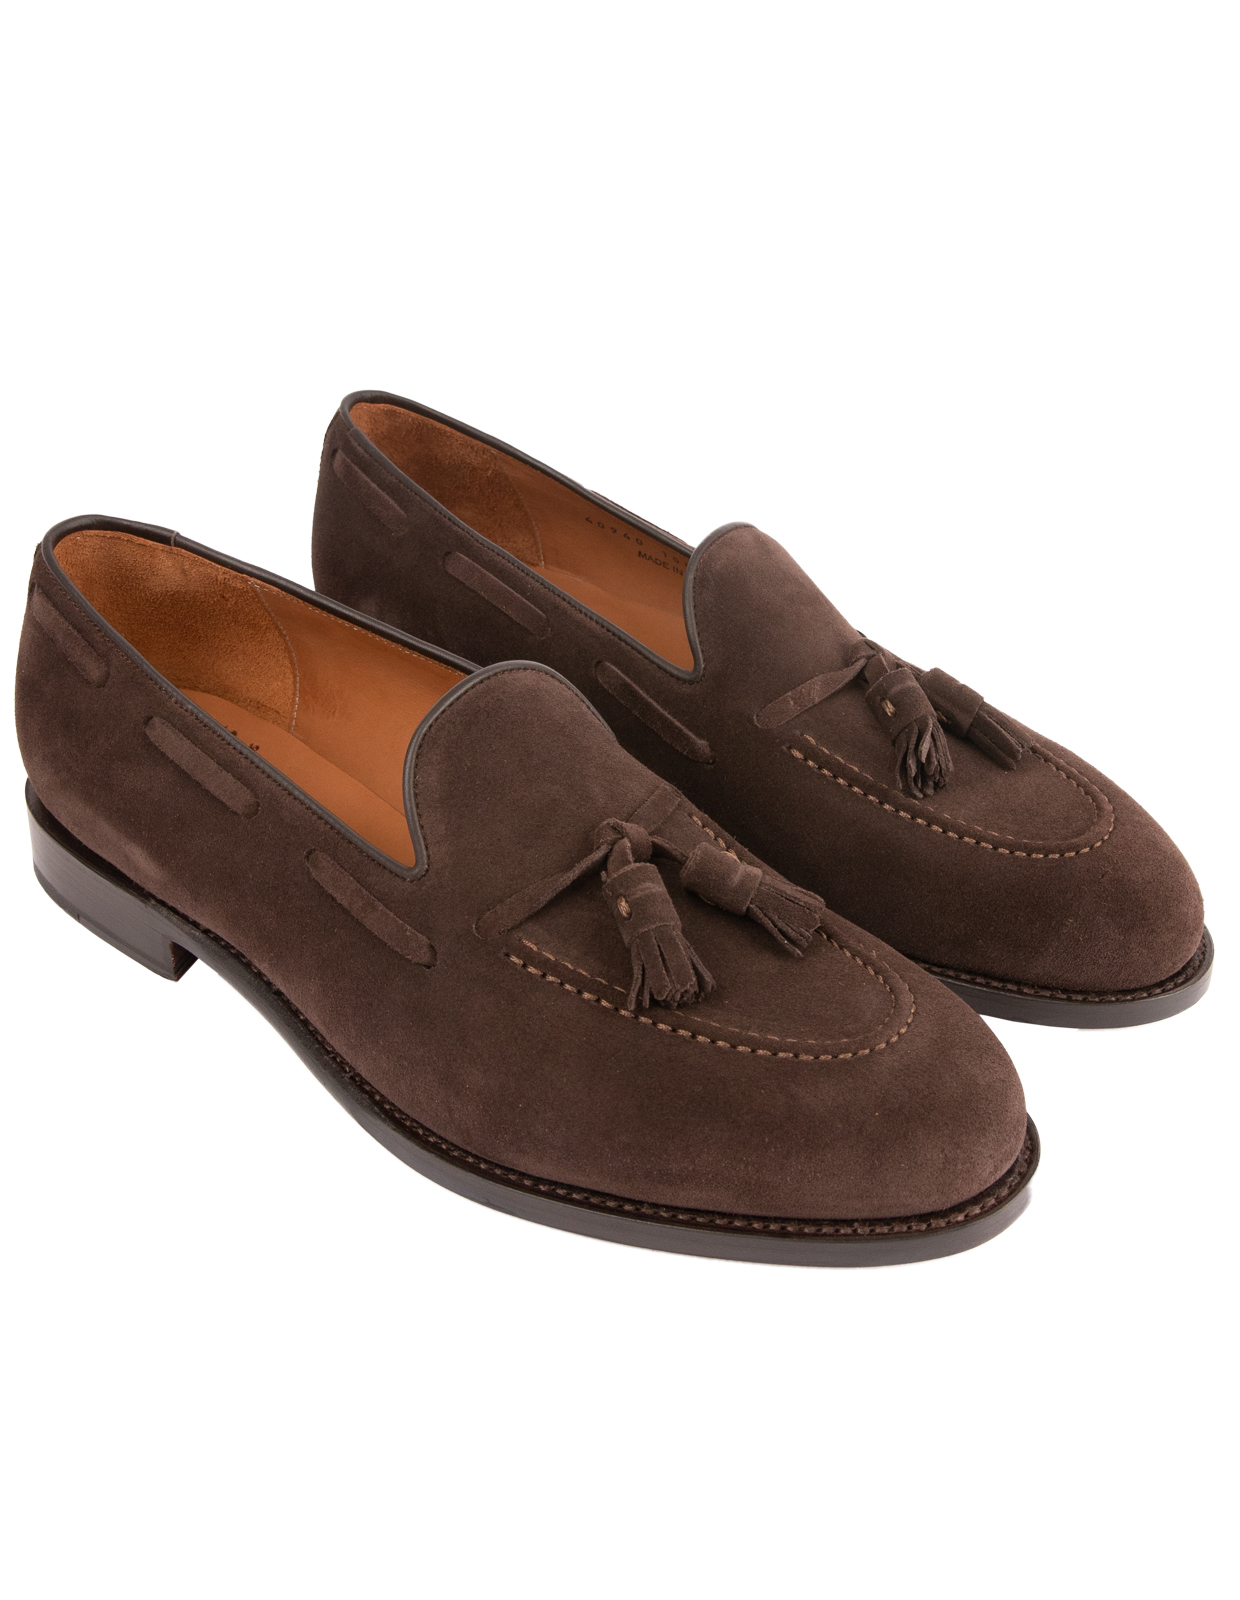 Tassel Loafers Suede Bitter Chocolate